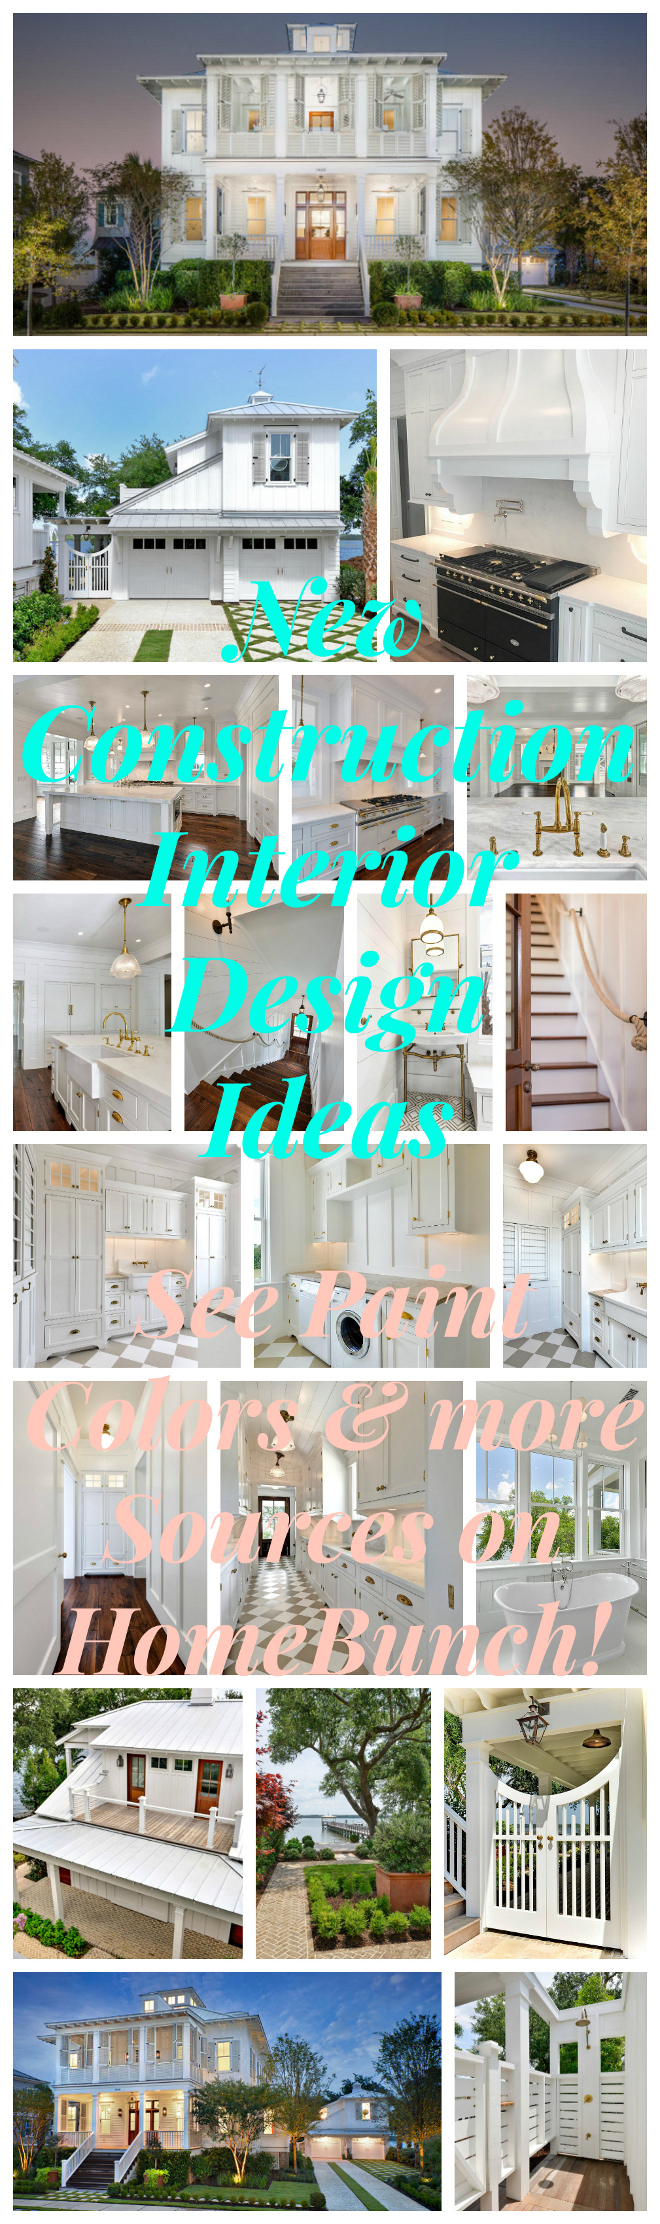 New Construction Interior Design Ideas. New Interior Design Ideas - a weekly series featuring the newest interior trends! See more on Home Bunch!